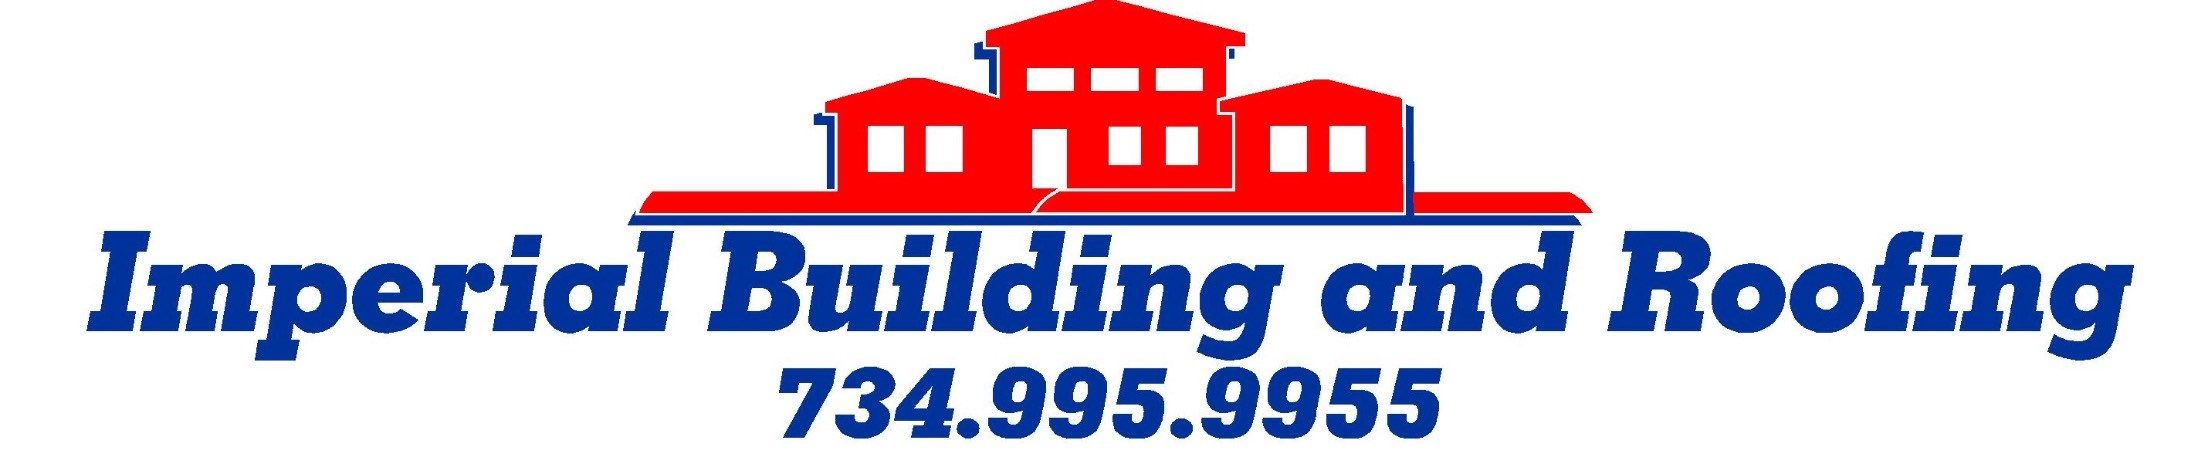 Imperial Building & Roofing Co Inc logo